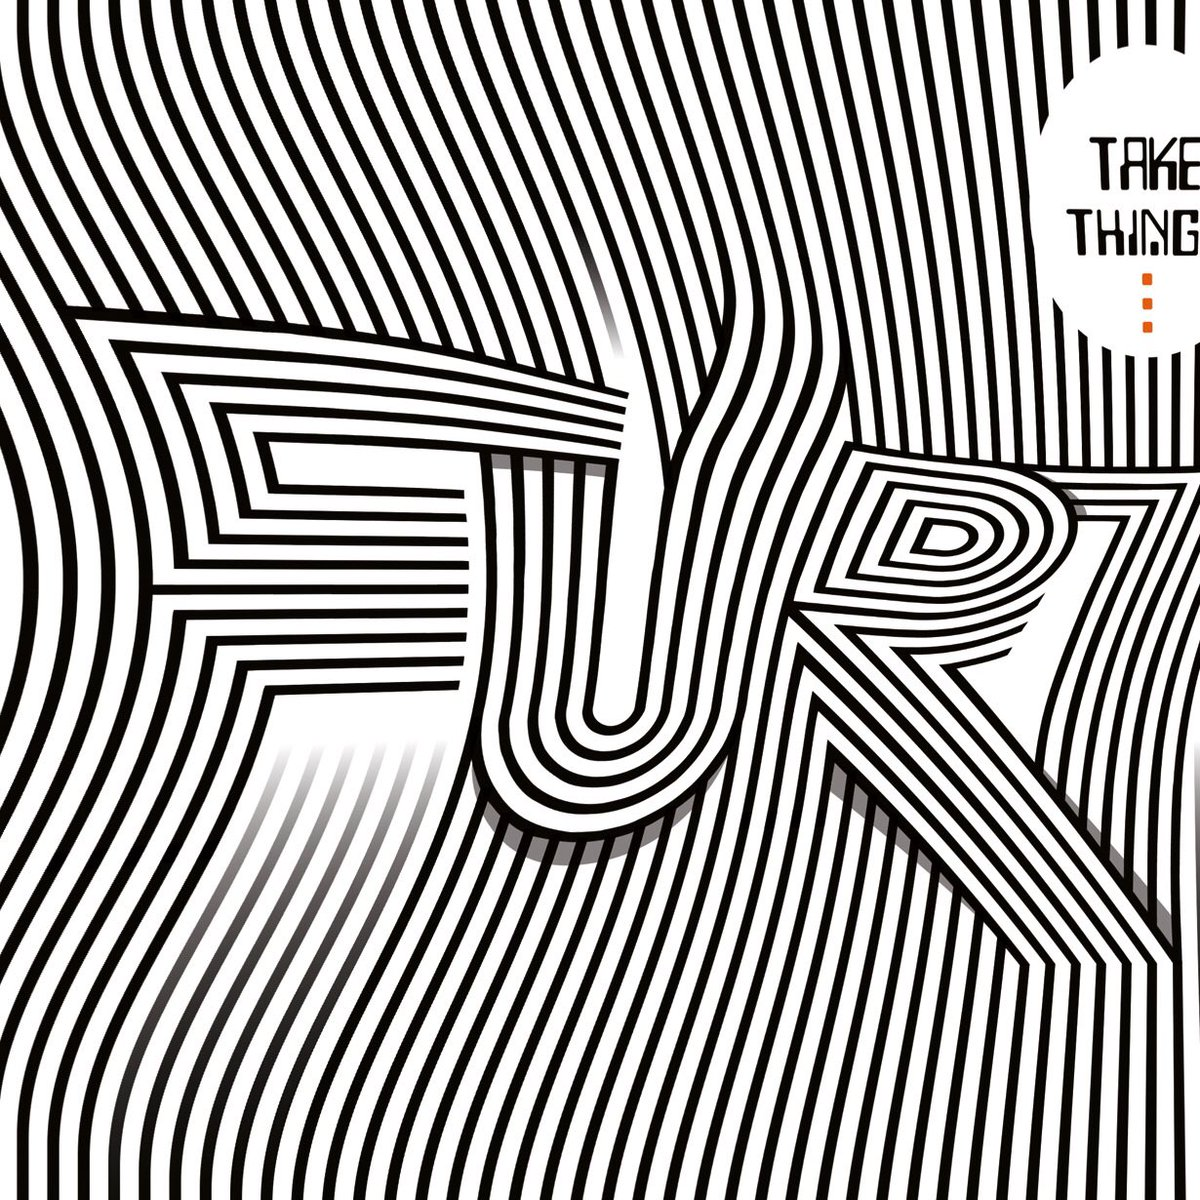 #Further  Sept 15th  @PorticoGallery #WestNorwood  with....  the karminsky experience inc. markey funk (Delights) @nuphunk (Further) @djfood  (Ninja Tune/Further) (O Is For Orange AV set)  Ltd. early bird tickets https://t.co/IoiP0oV6qU